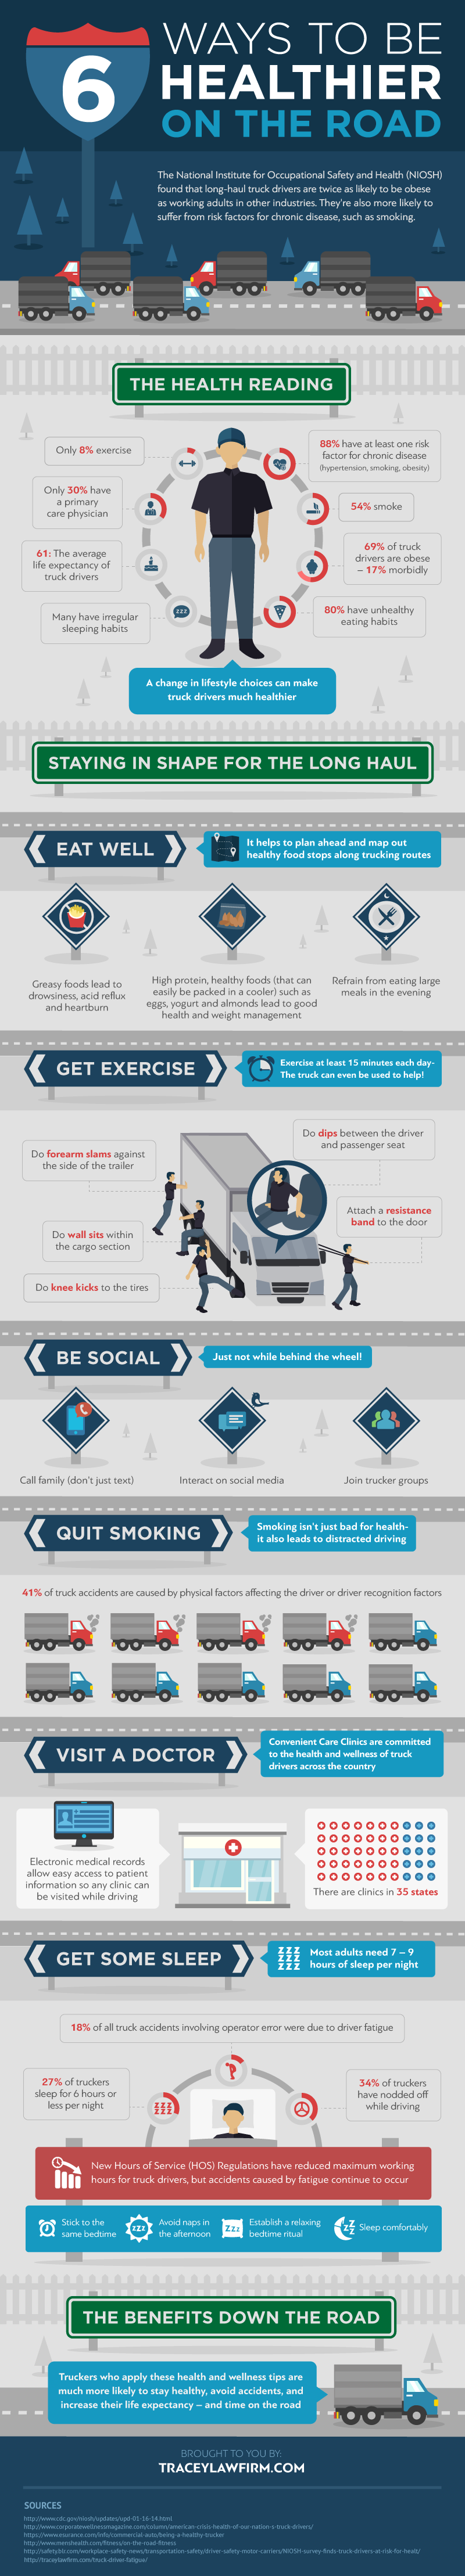 Infographic: 6 ways truckers can stay healthier on the road